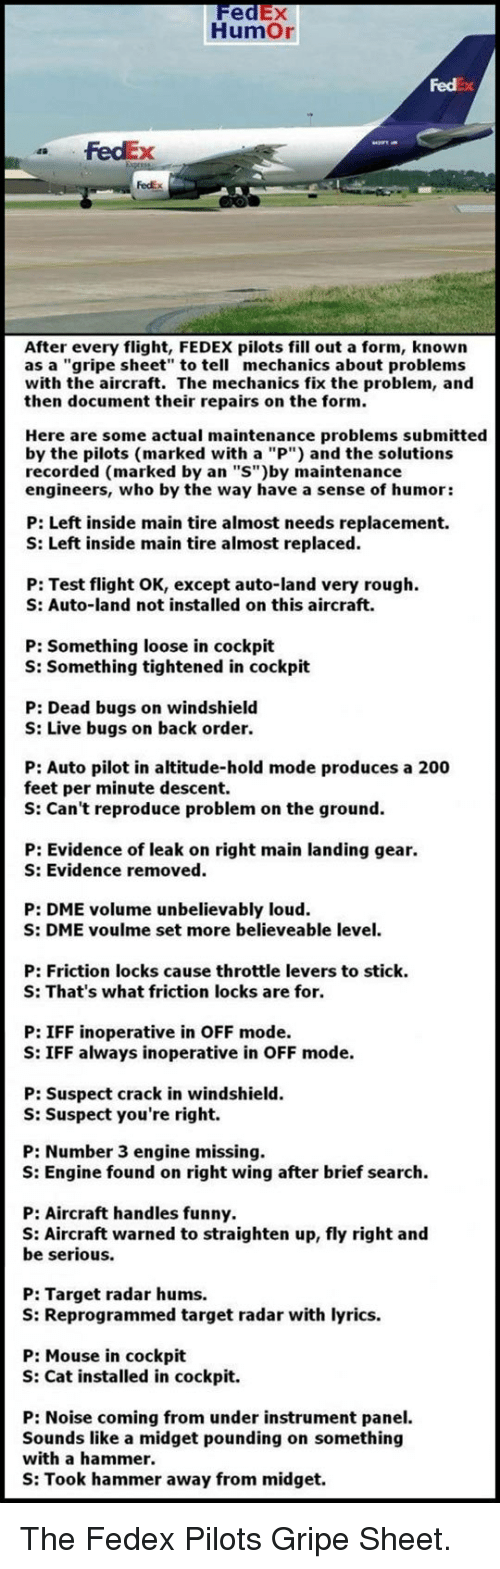 """Bailey Jay, Funny, and Target: FedEX  HumOr  Fedx  FedEx  FedEx  After every flight, FEDEX pilots fill out a form, known  as a """"gripe sheet to tell mechanics about problems  with the aircraft. The mechanics fix the problem, and  then document their repairs on the form.  Here are some actual maintenance problems submitted  by the pilots (marked with a """"P"""") and the solutions  recorded (marked by an """"S"""")by maintenance  engineers, who by the way have a sense of humor:  P: Left inside main tire almost needs replacement.  S: Left inside main tire almost replaced.  P: Test flight OK, except auto-land very rough  S: Auto-land not installed on this aircraft.  P: Something loose in cockpit  S: Something tightened in cockpit  P: Dead bugs on windshield  S: Live bugs on back order.  P: Auto pilot in altitude-hold mode produces a 200  feet per minute descent.  S: Can't reproduce problem on the ground.  P: Evidence of leak on right main landing gear.  S: Evidence removed  P: DME volume unbelievably loud  S: DME voulme set more believeable level.  P: Friction locks cause throttle levers to stick  S: That's what friction locks are for  P: IFF inoperative in OFF mode.  S: IFF always inoperative in OFF mode.  P: Suspect crack in windshield.  S: Suspect you're right.  P: Number 3 engine missing.  S: Engine found on right wing after brief search.  P: Aircraft handles funny.  S: Aircraft warned to straighten up, fly right and  be serious.  P: Target radar hums.  S: Reprogrammed target radar with lyrics.  P: Mouse in cockpit  S: Cat installed in cockpit.  P: Noise coming from under instrument panel.  Sounds like a midget pounding on something  with a hammer  S: Took hammer away from midget. <p>The Fedex Pilots Gripe Sheet.</p>"""